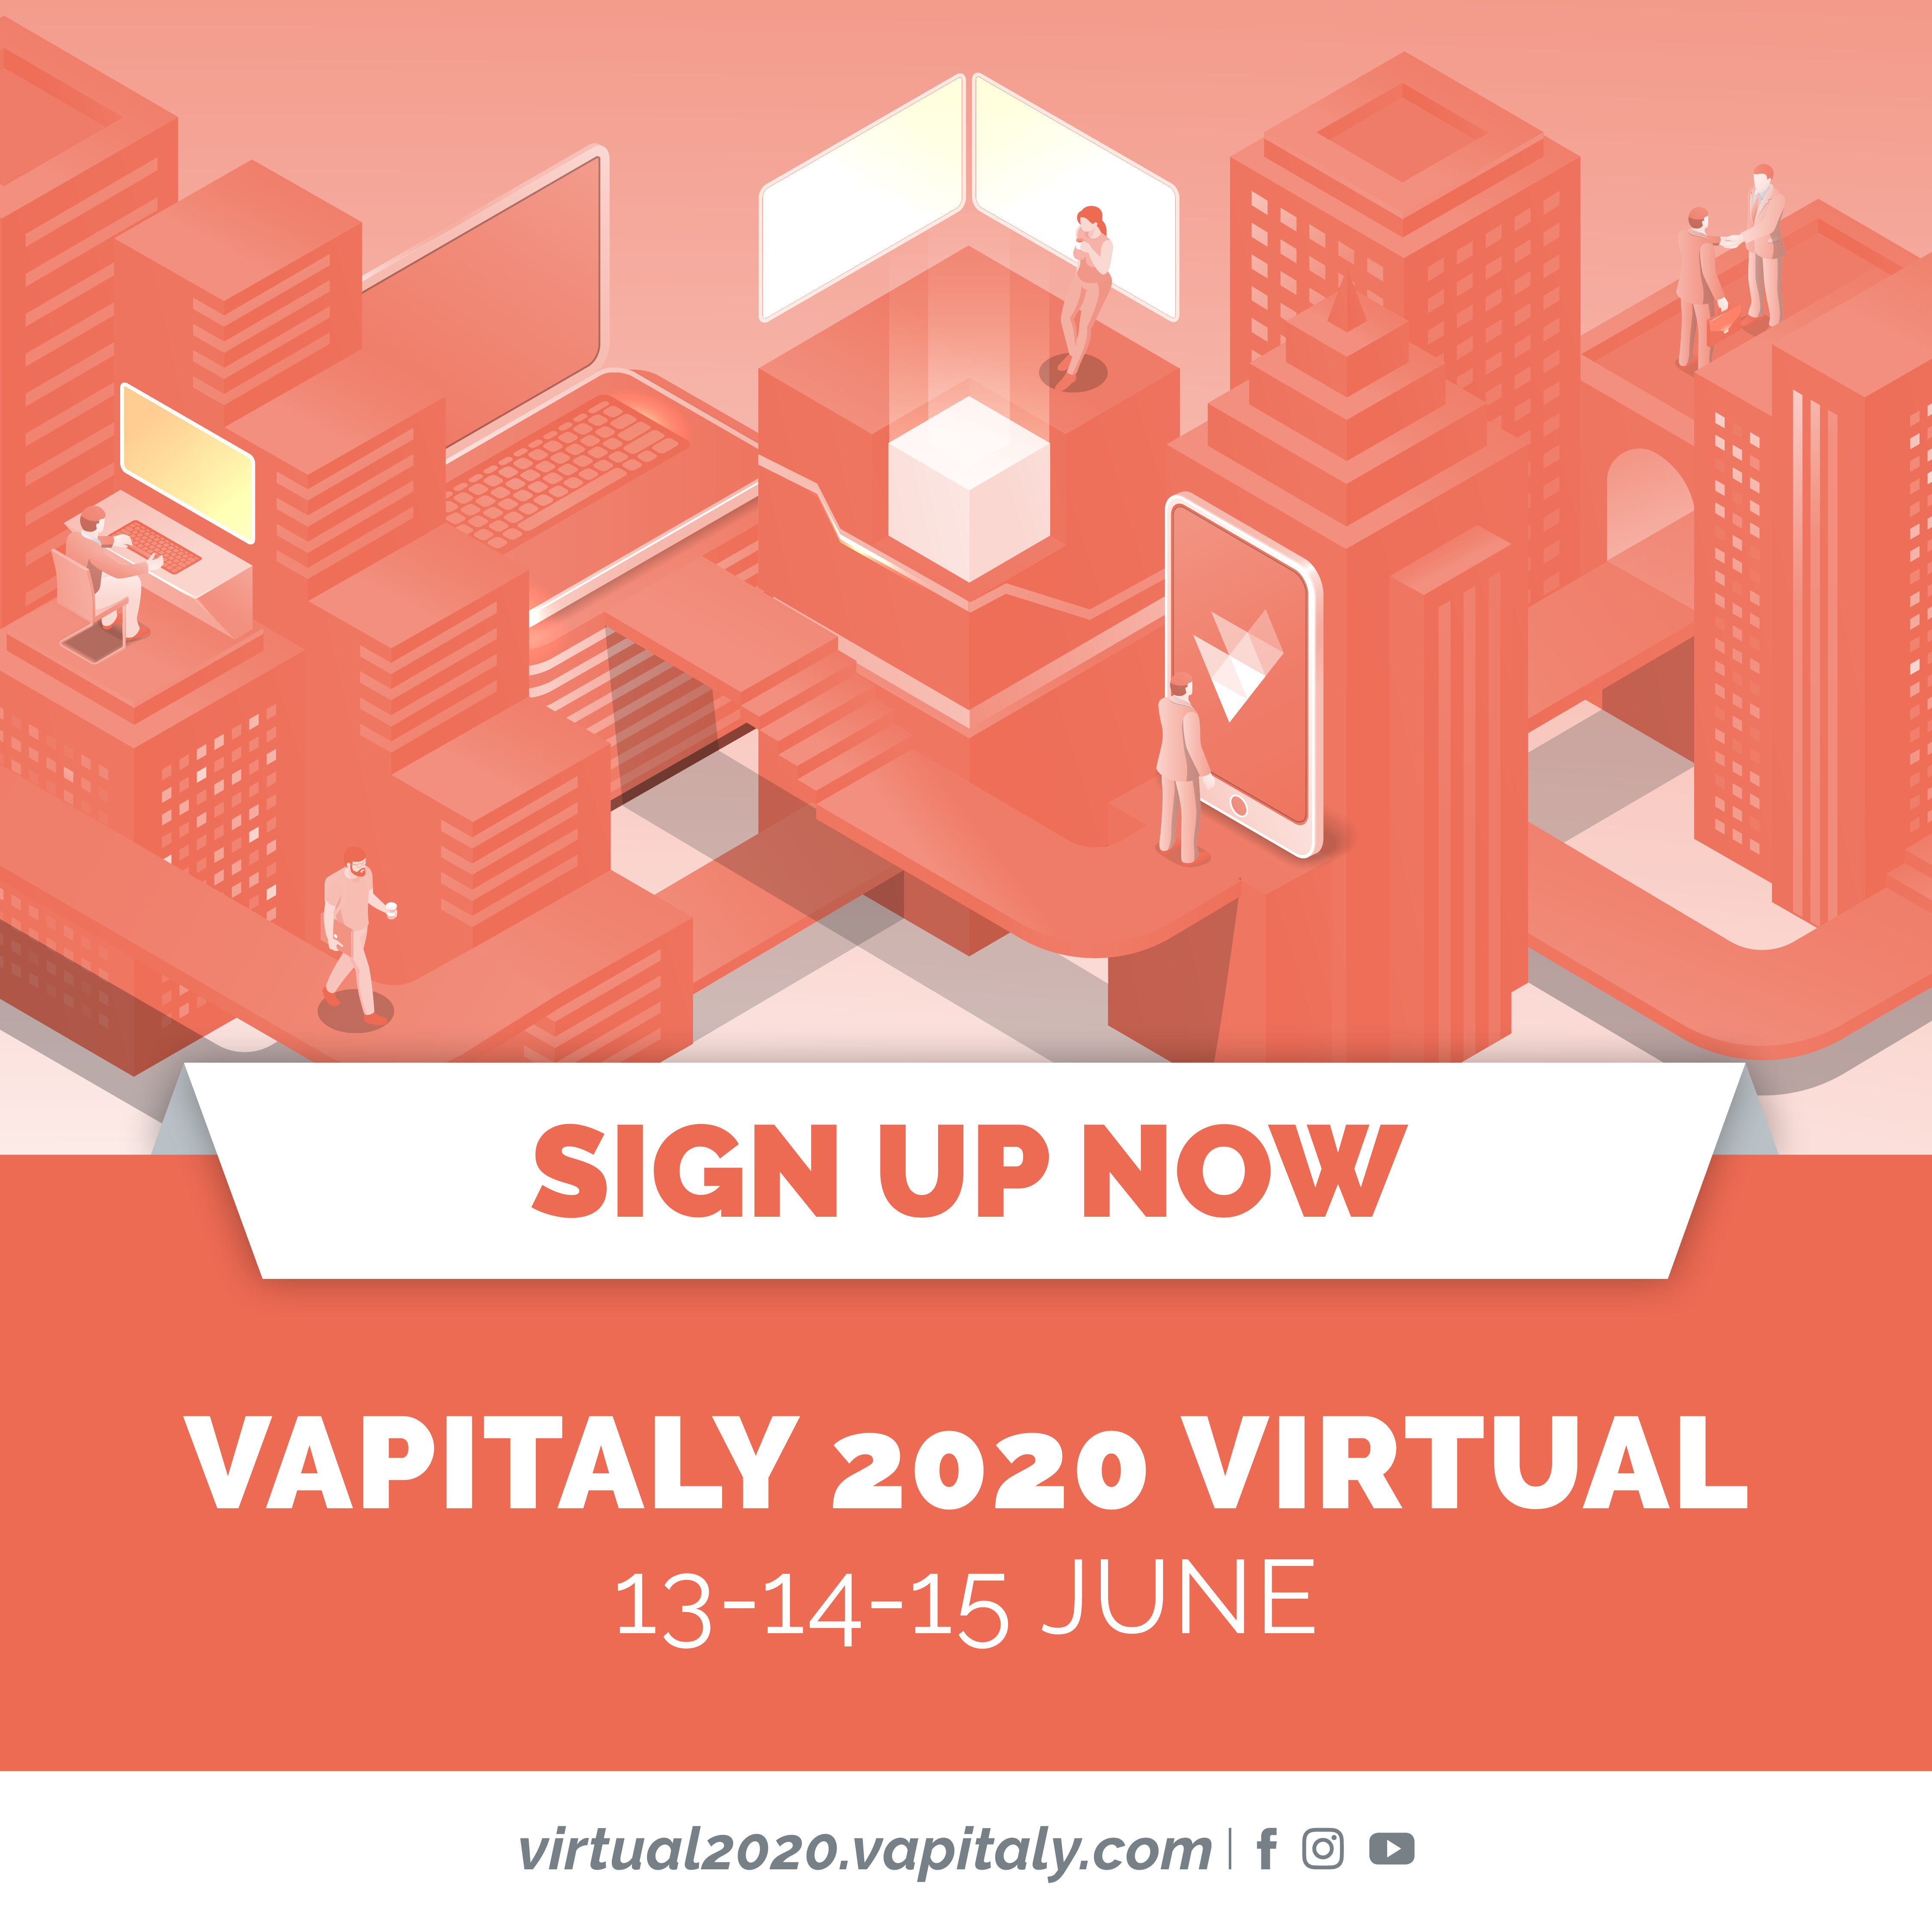 VAPITALY 2020 VIRTUAL Registration open, book your place in the front line